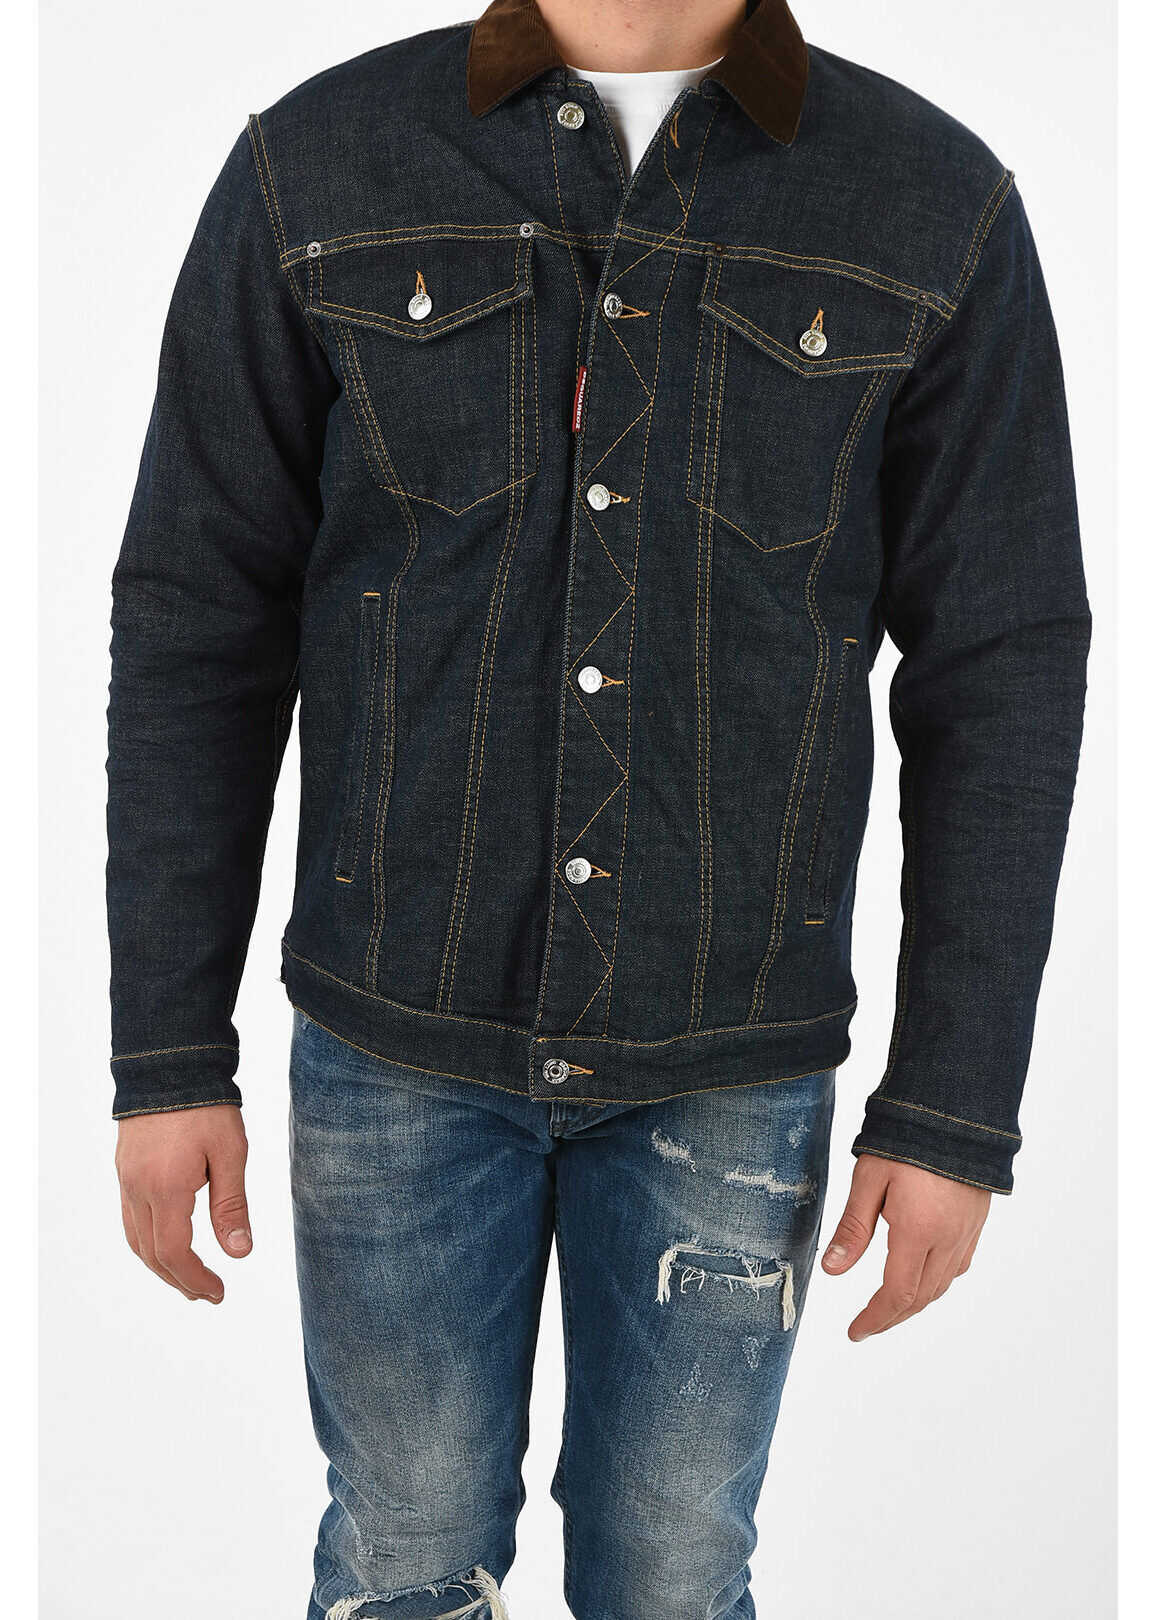 DSQUARED2 denim OVER jacket with Veltev Detail BLUE imagine